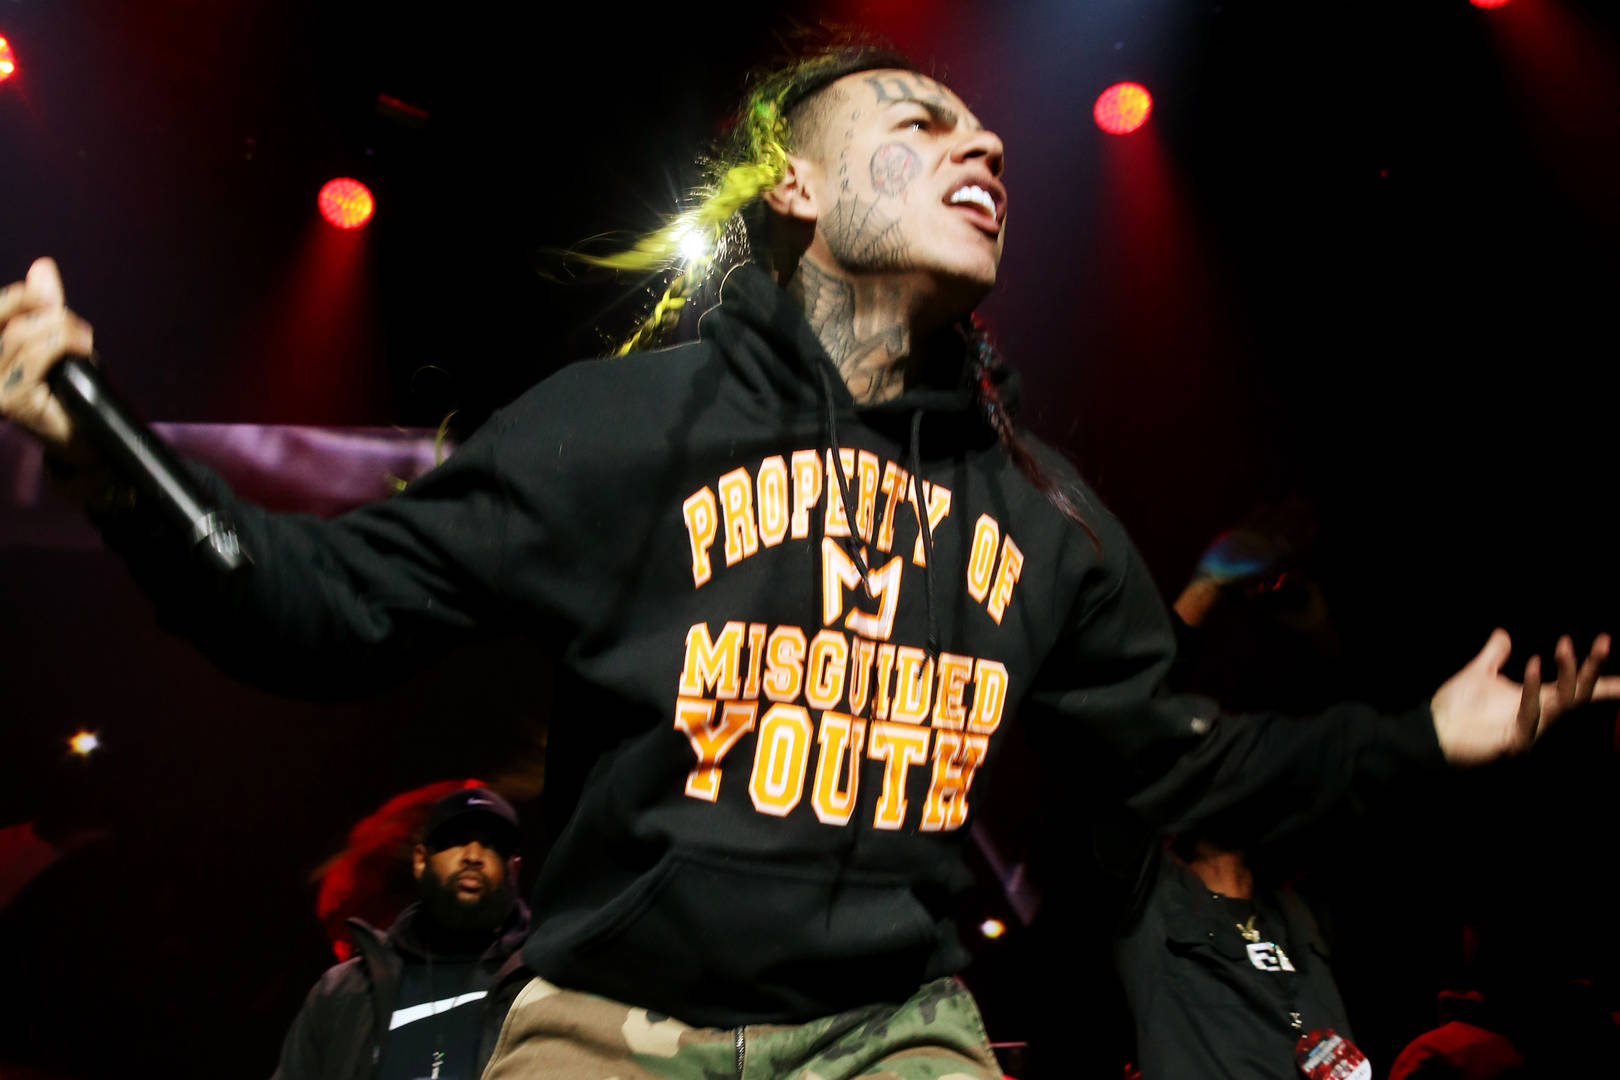 Tekashi 6ix9ine Sentenced to 2 Years in Prison in Drugs & Weapons Case